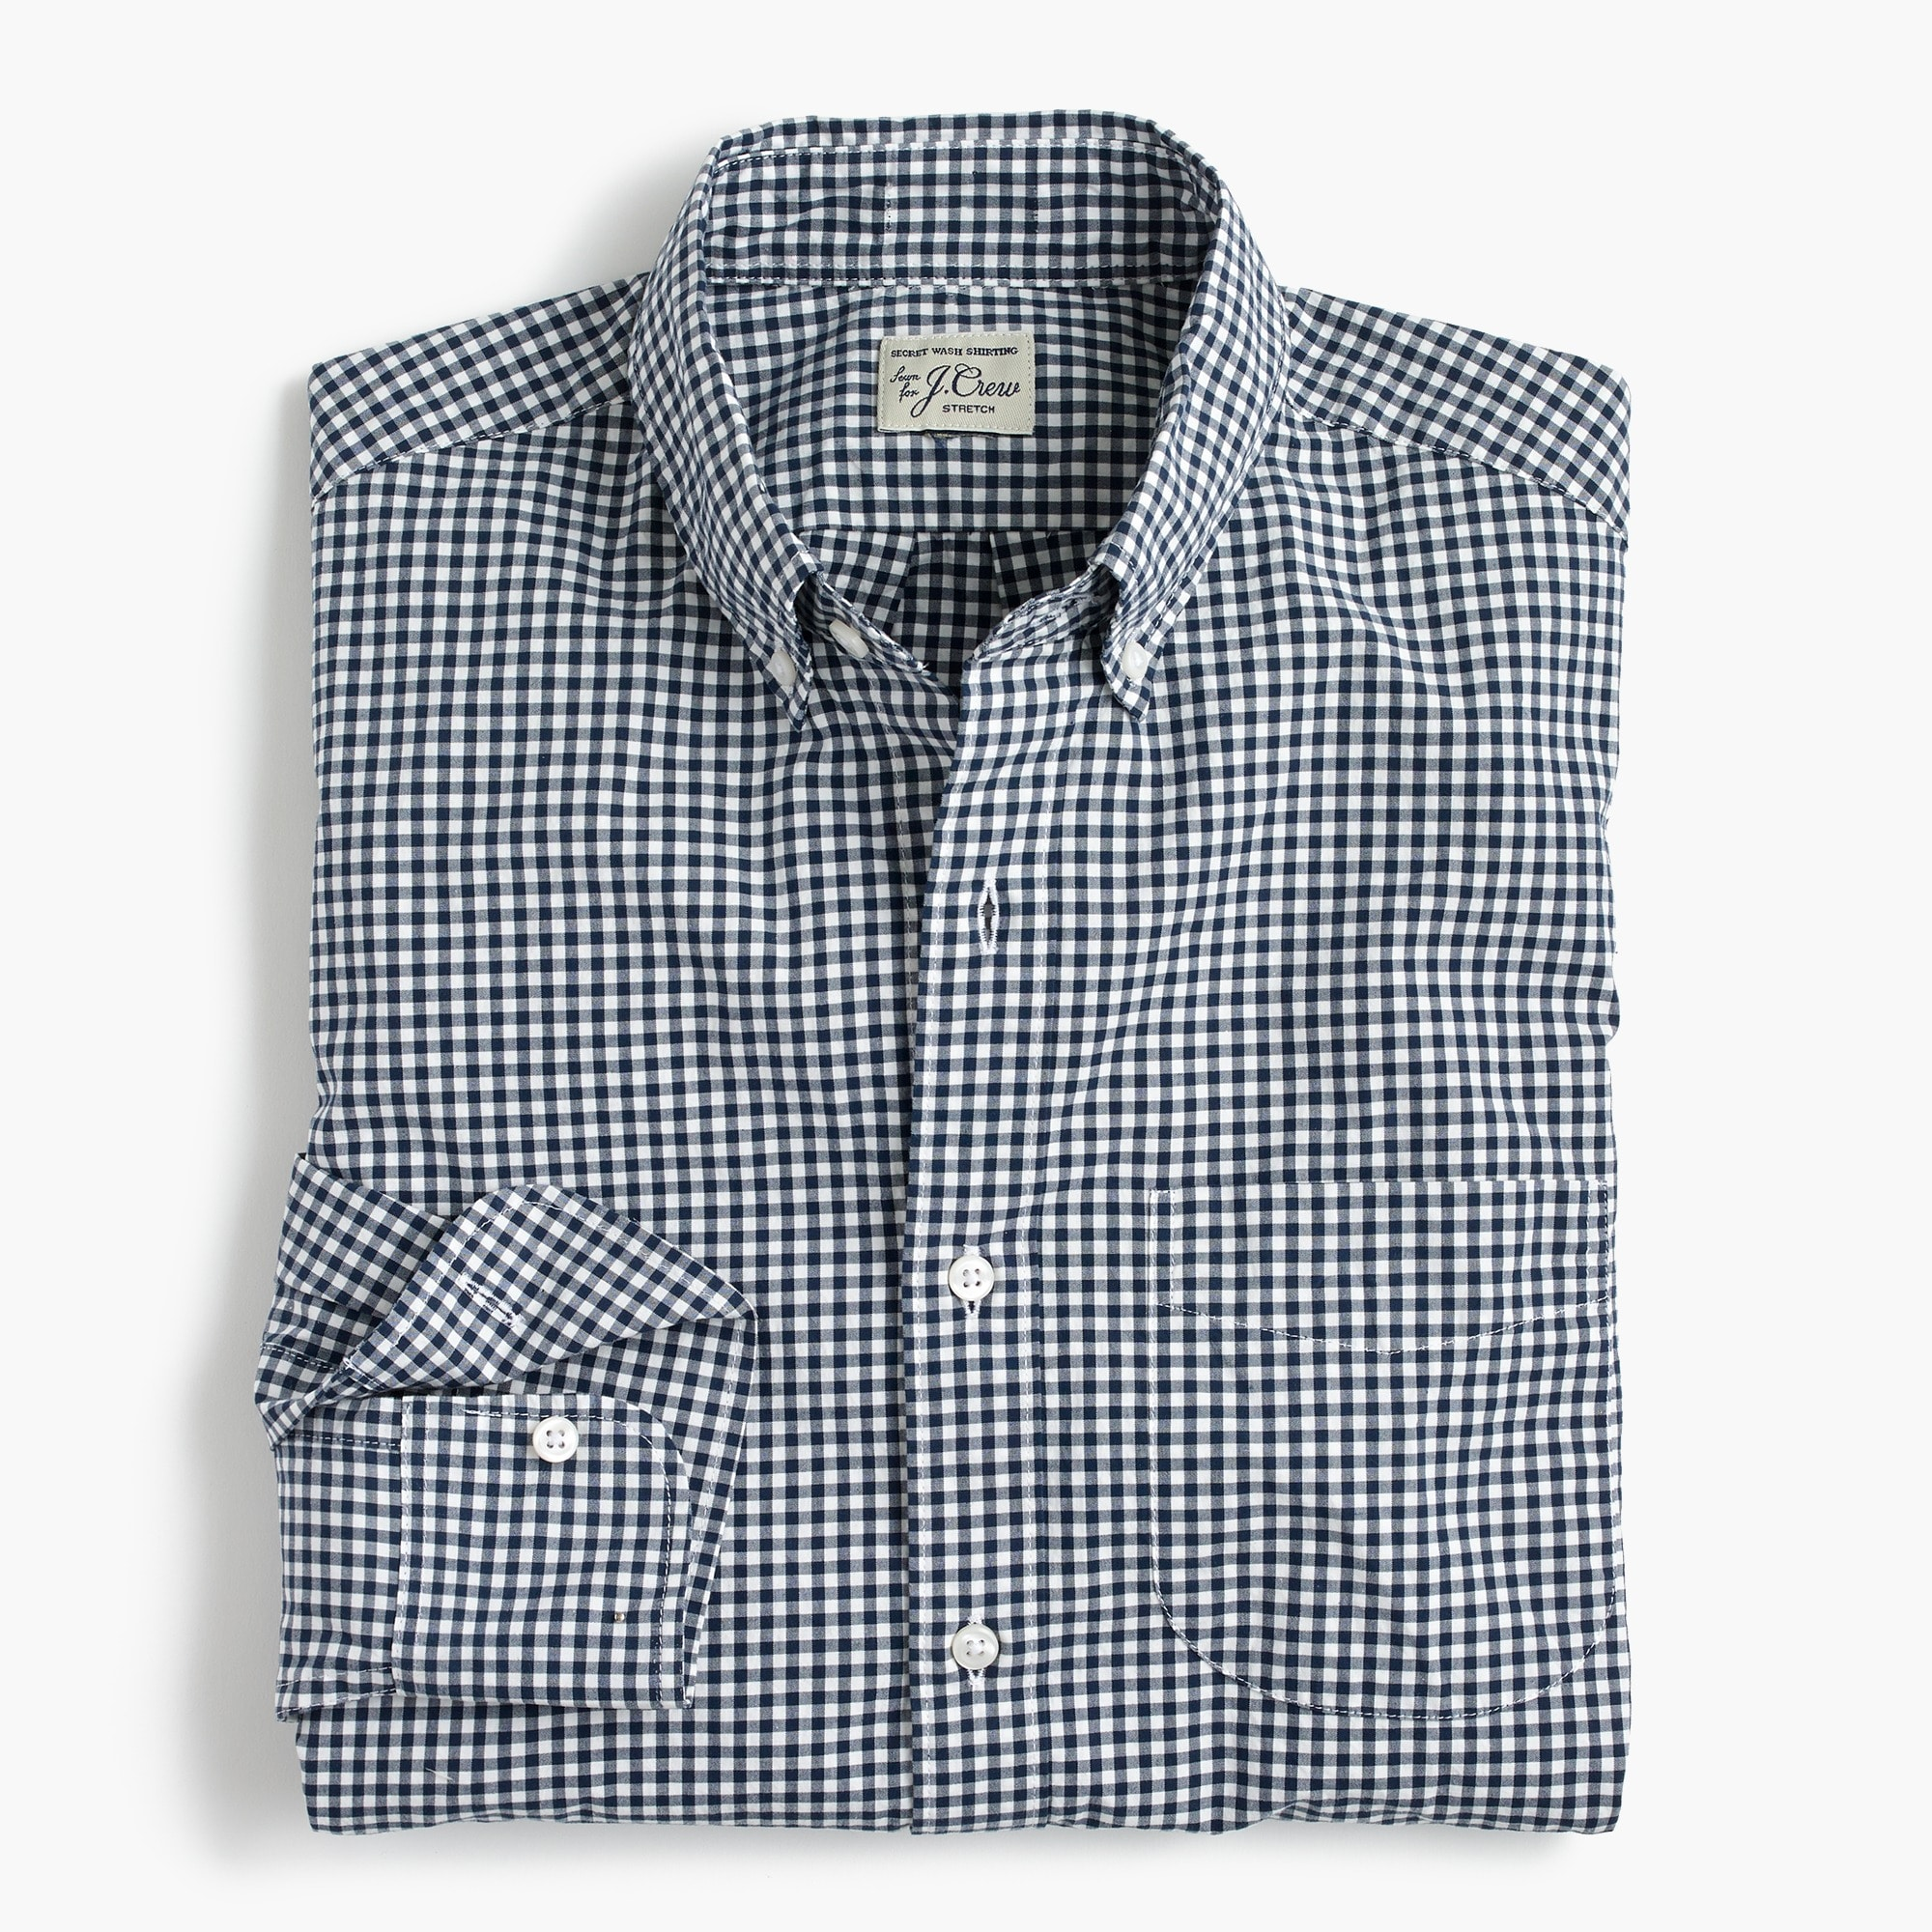 mens Untucked stretch Secret Wash shirt in gingham poplin